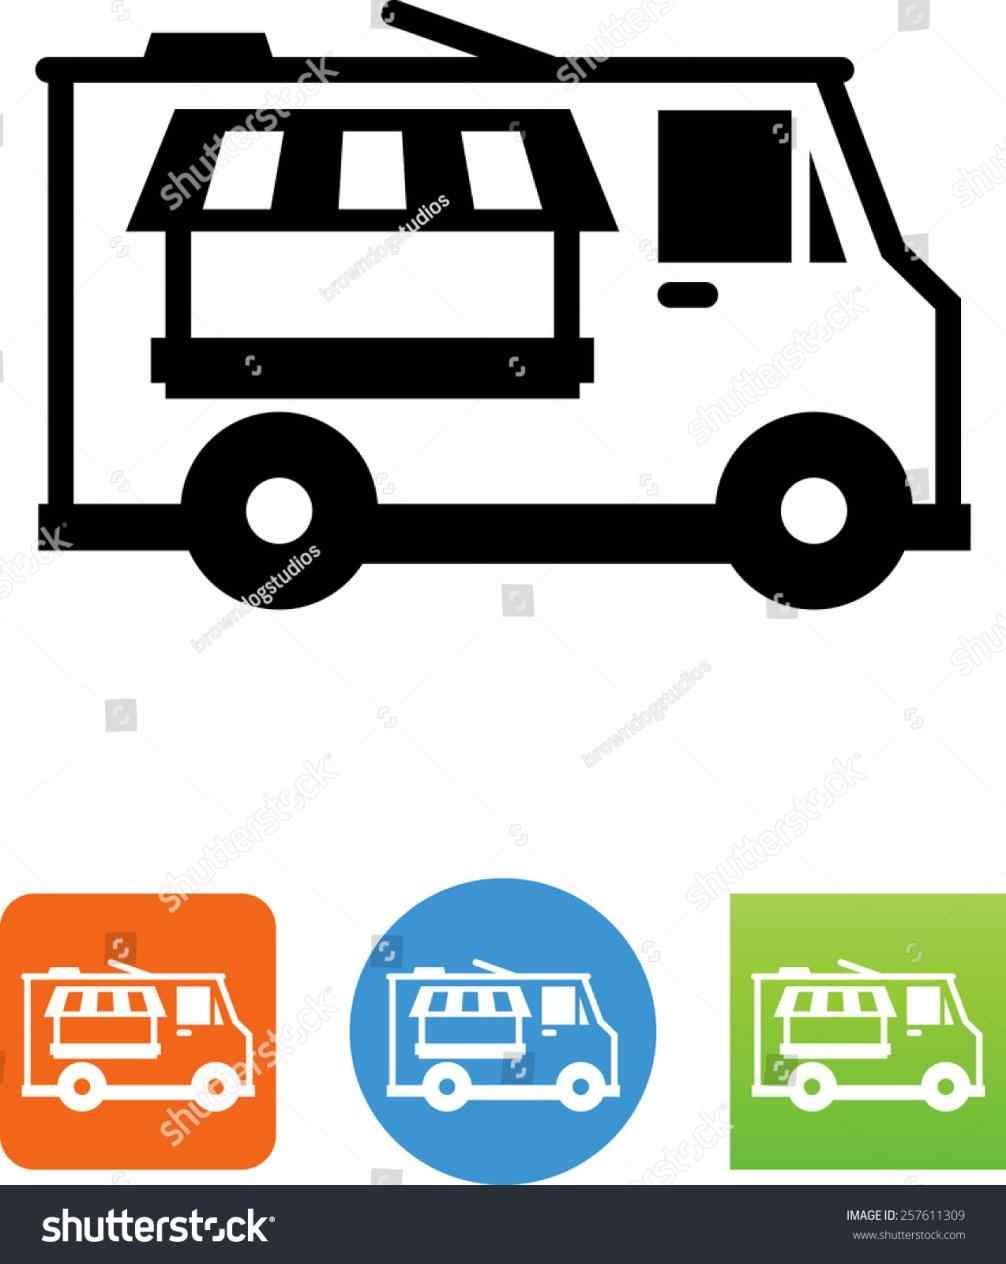 1006x1264 The Images Collection Of Royaltyfree Food Truck Silhouette Icon